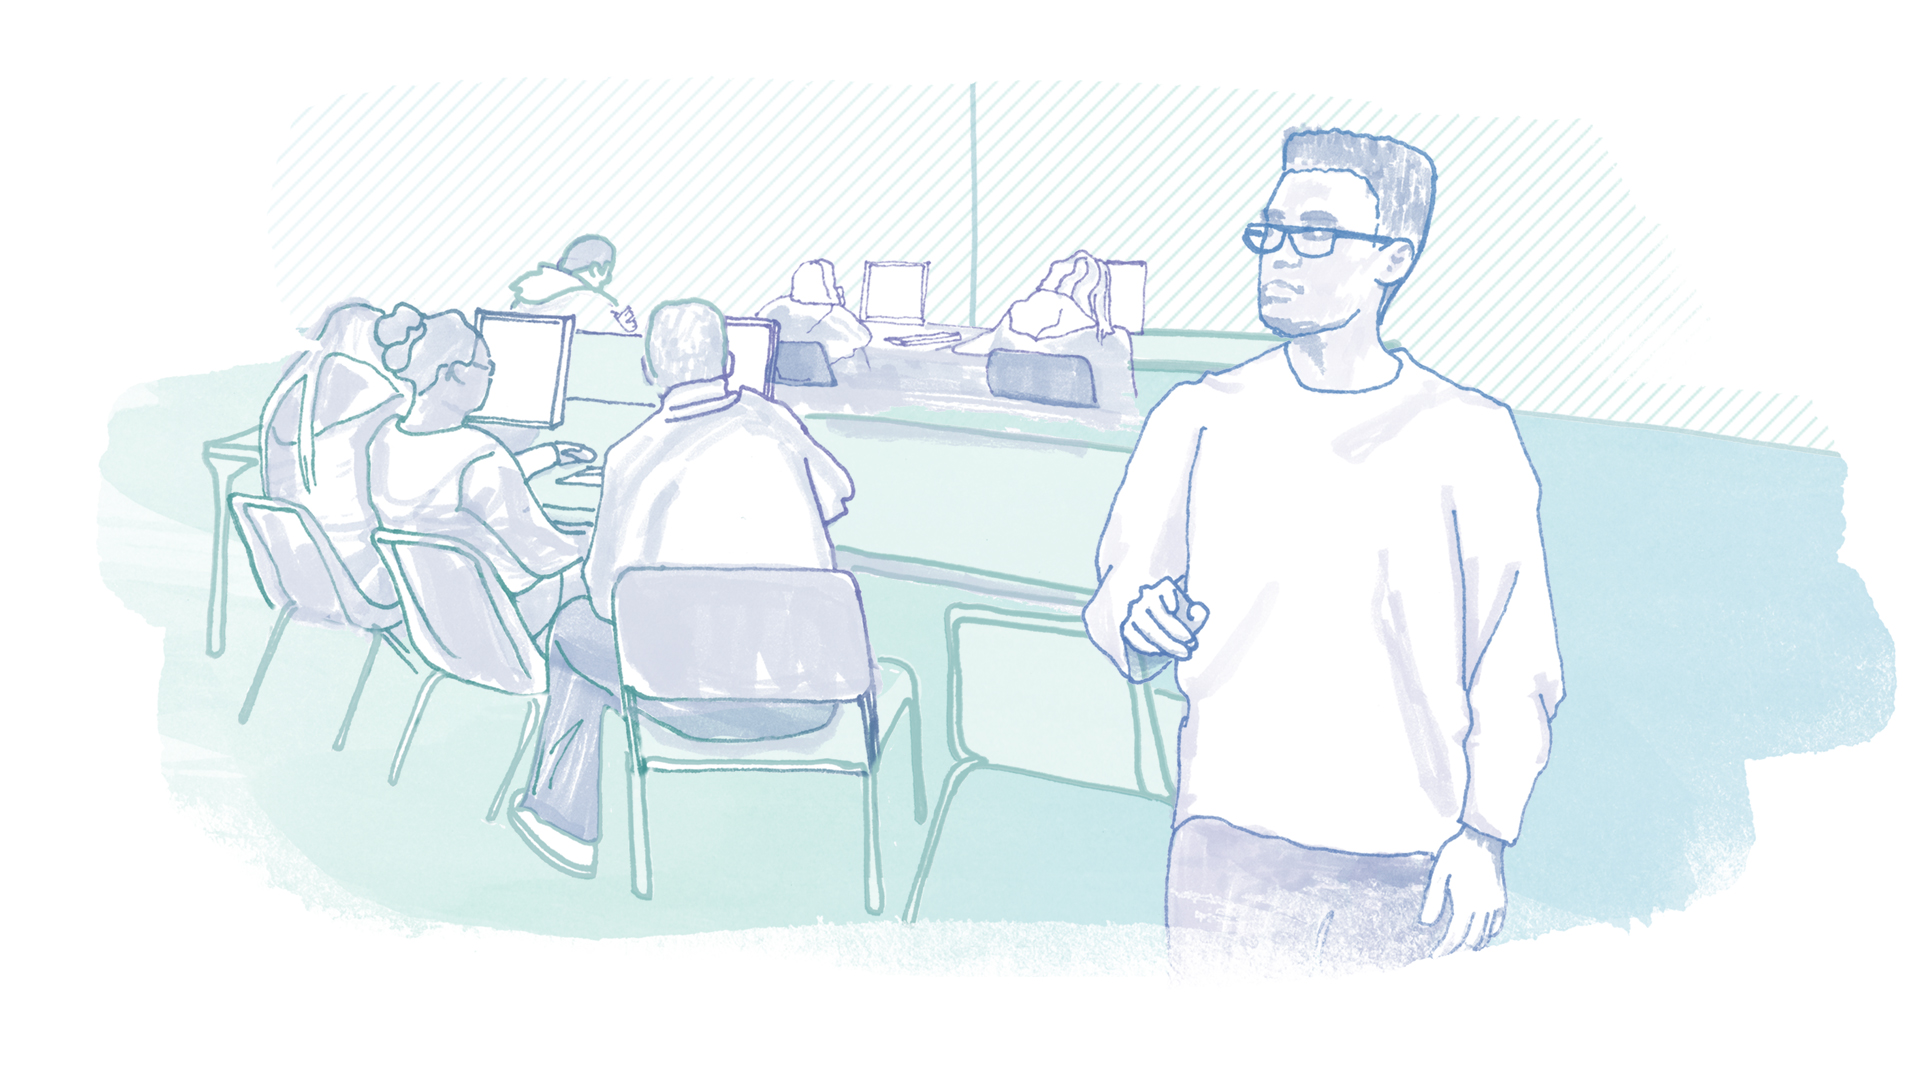 A hand-drawn illustration depicts a teacher standing in front of a classroom. Students are seen working at computers in the background.